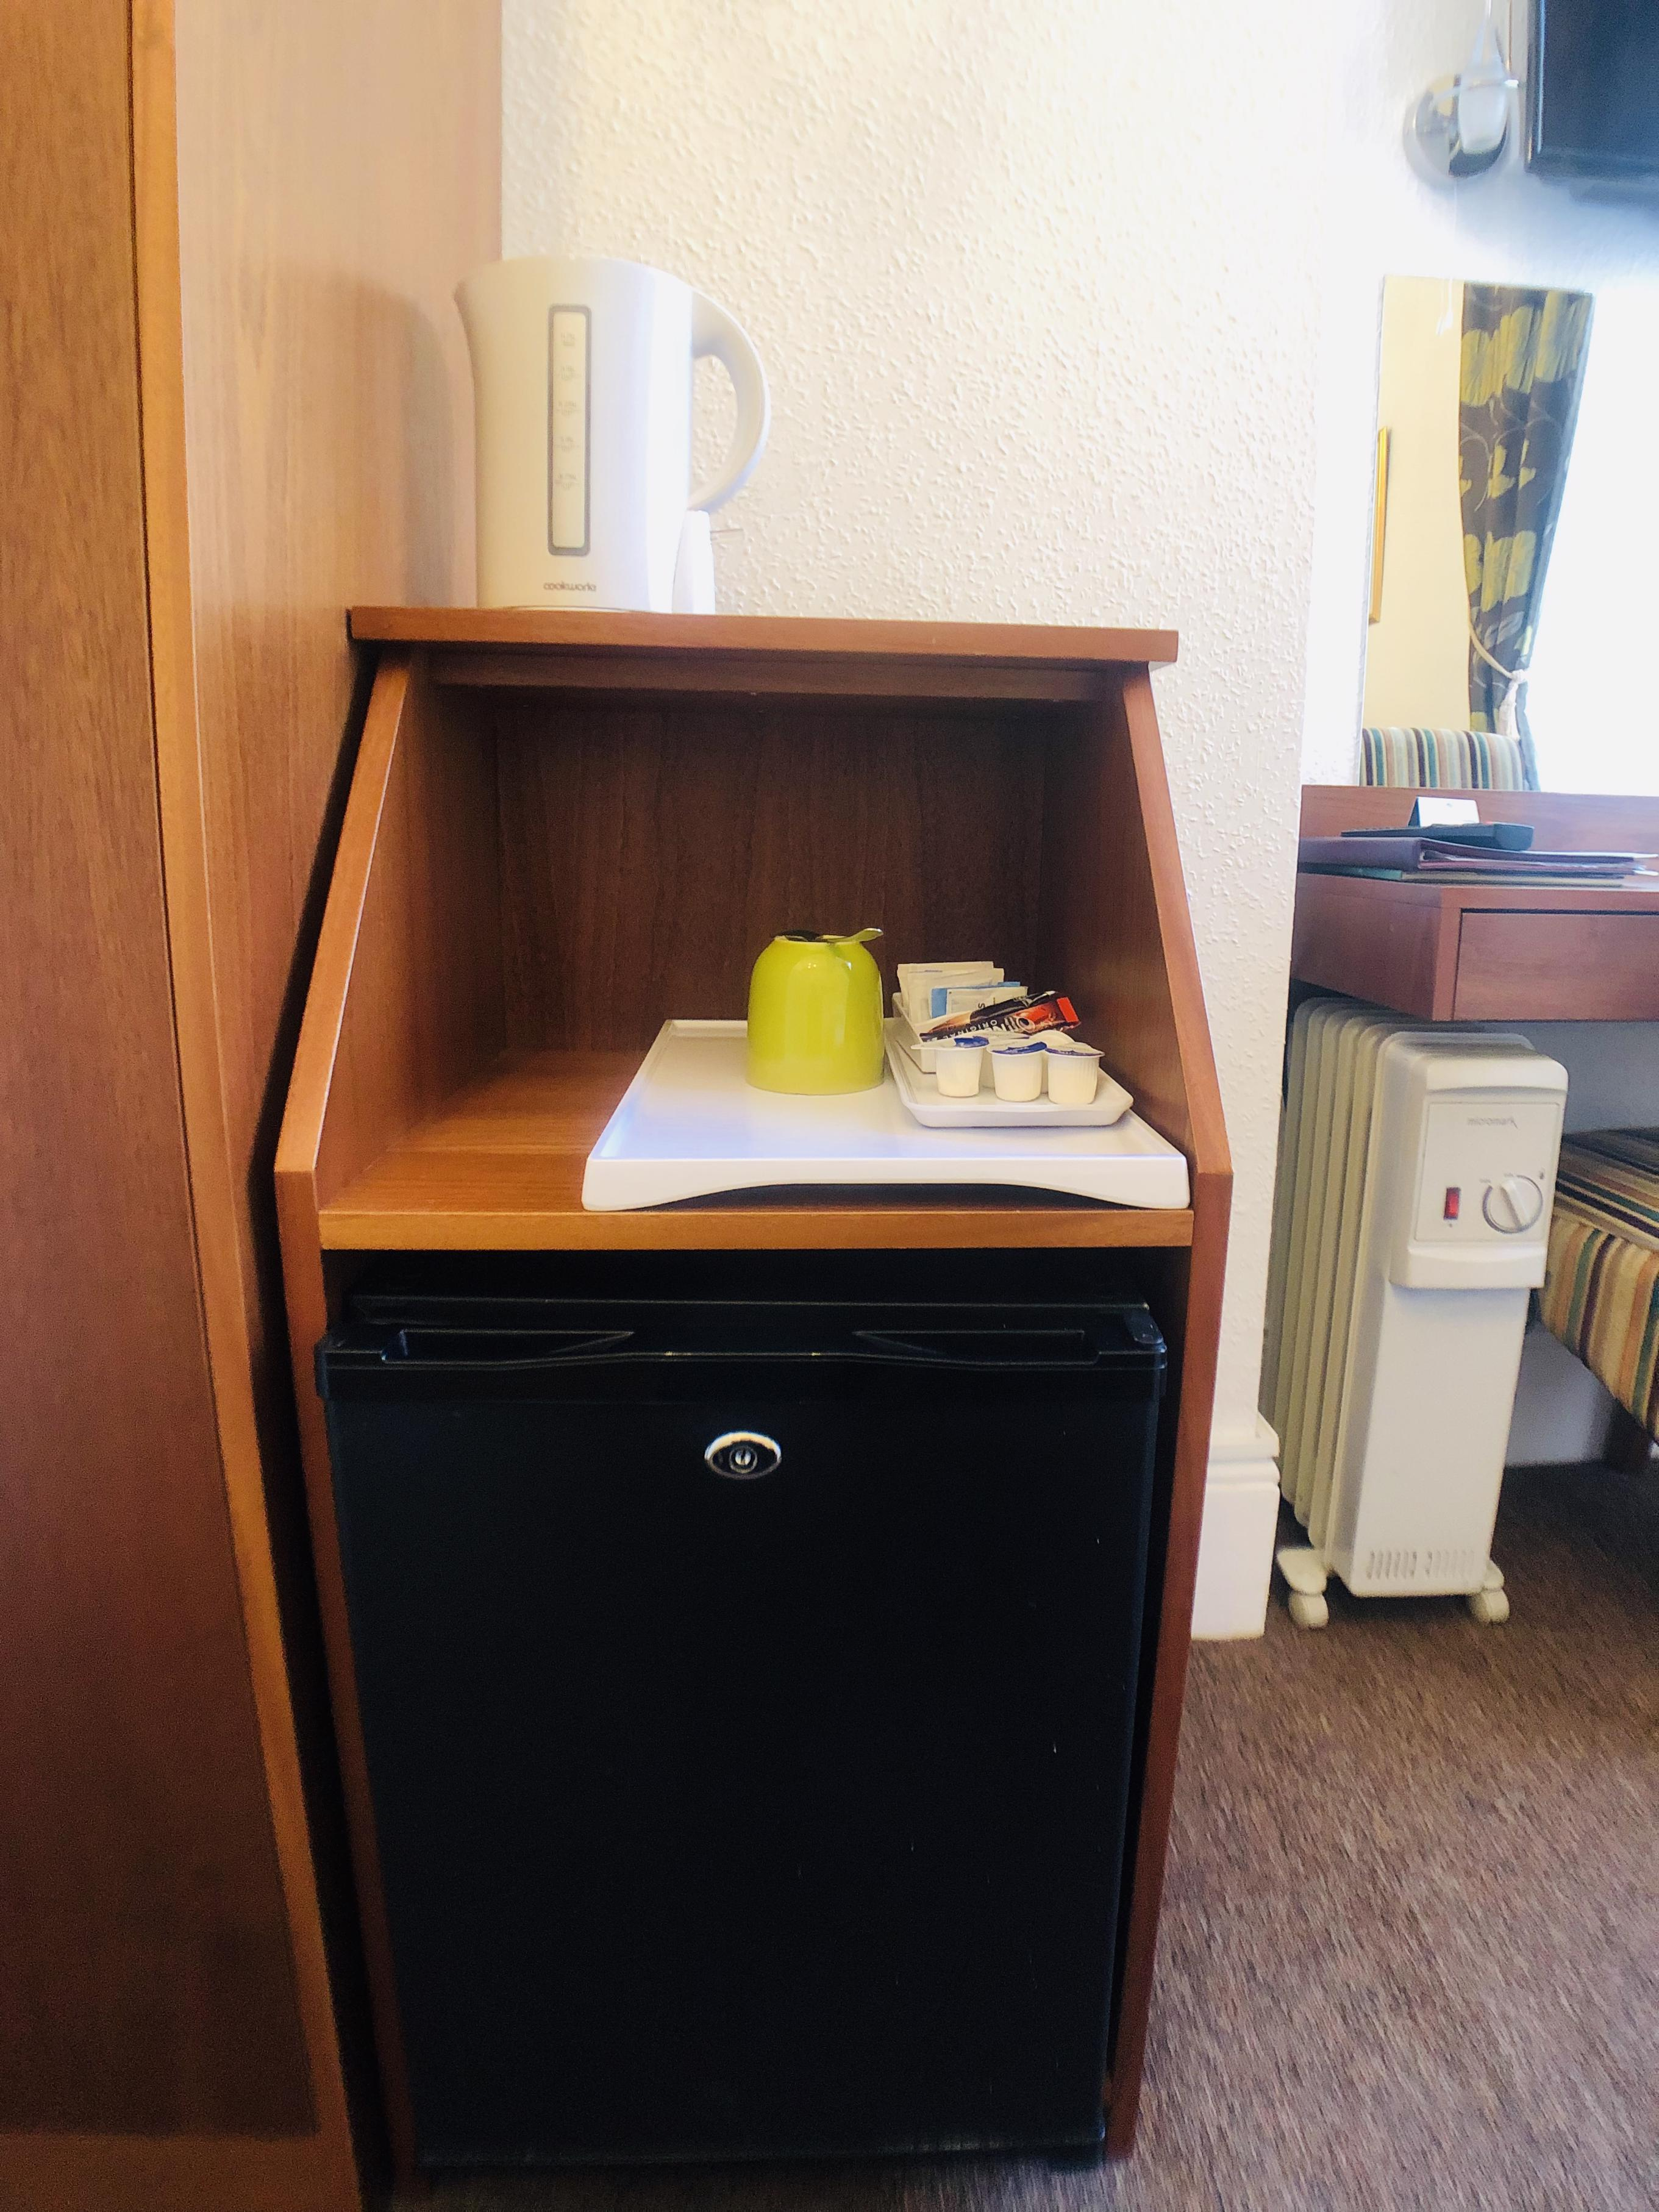 Twin Bed Hotel Room: Ilfracombe Hotel In Southend